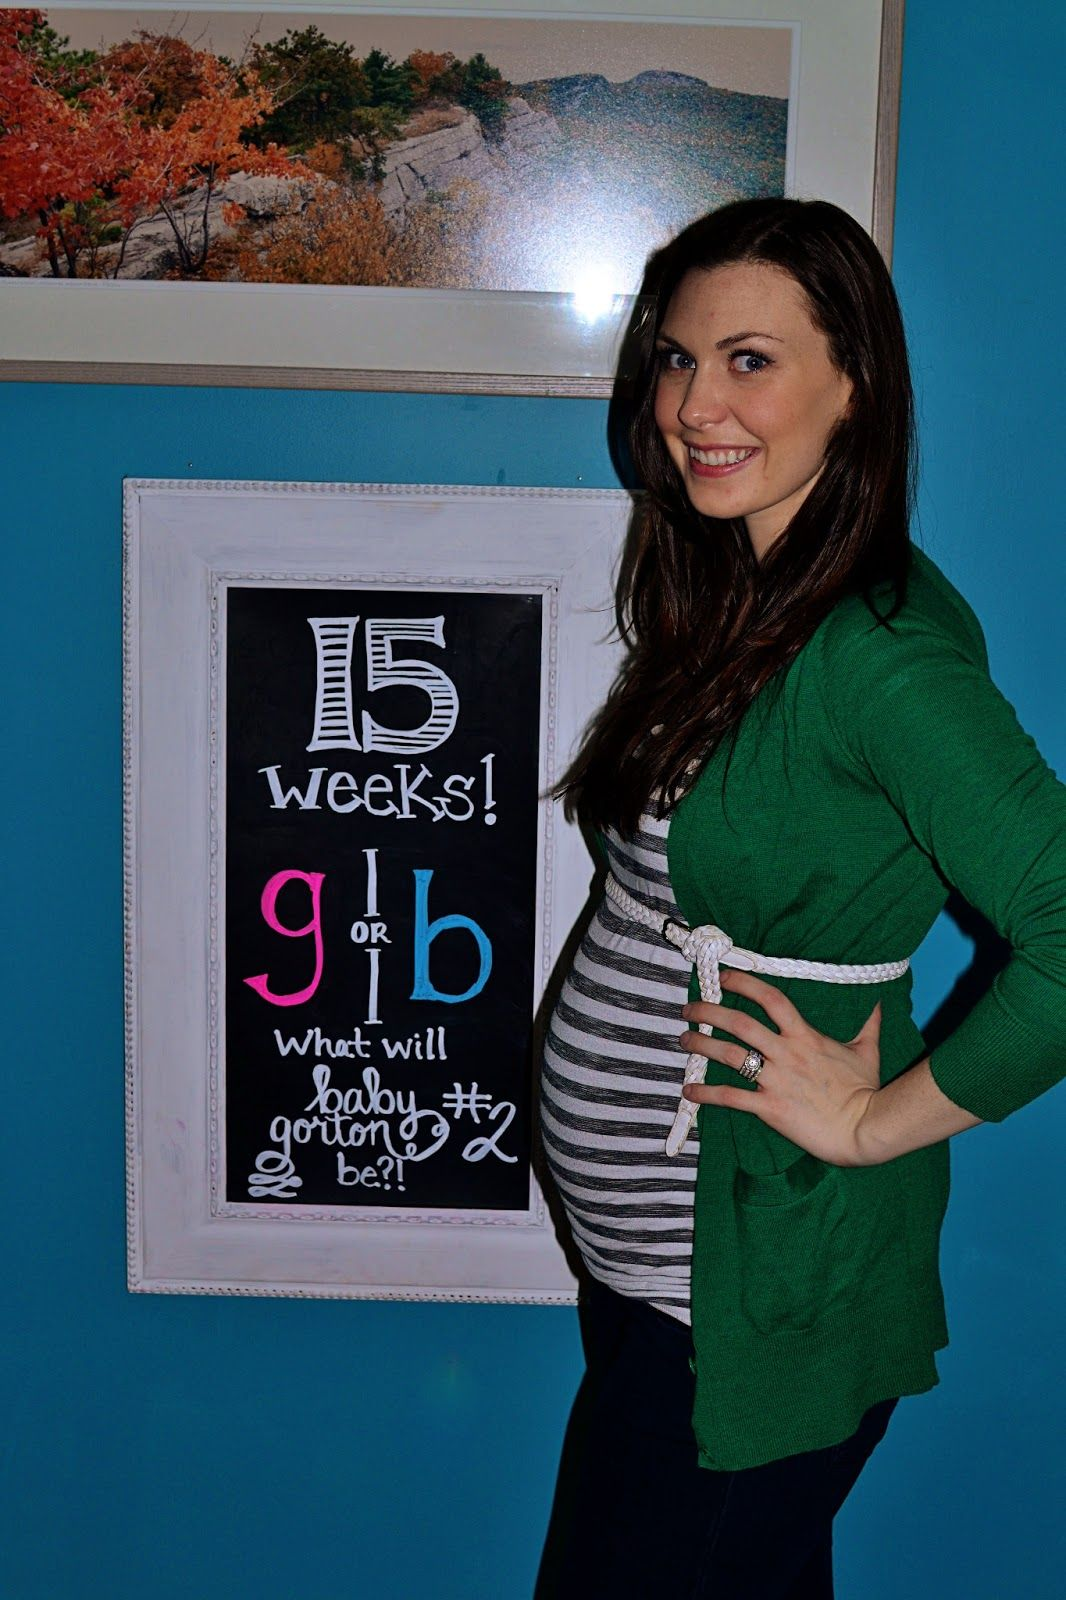 15 weeks Pregnant!...plus a couple days! Happy to say I lost 5 lbs in  January as part of my NYE resolution, and I've only just now gained 4 of  them back! :D